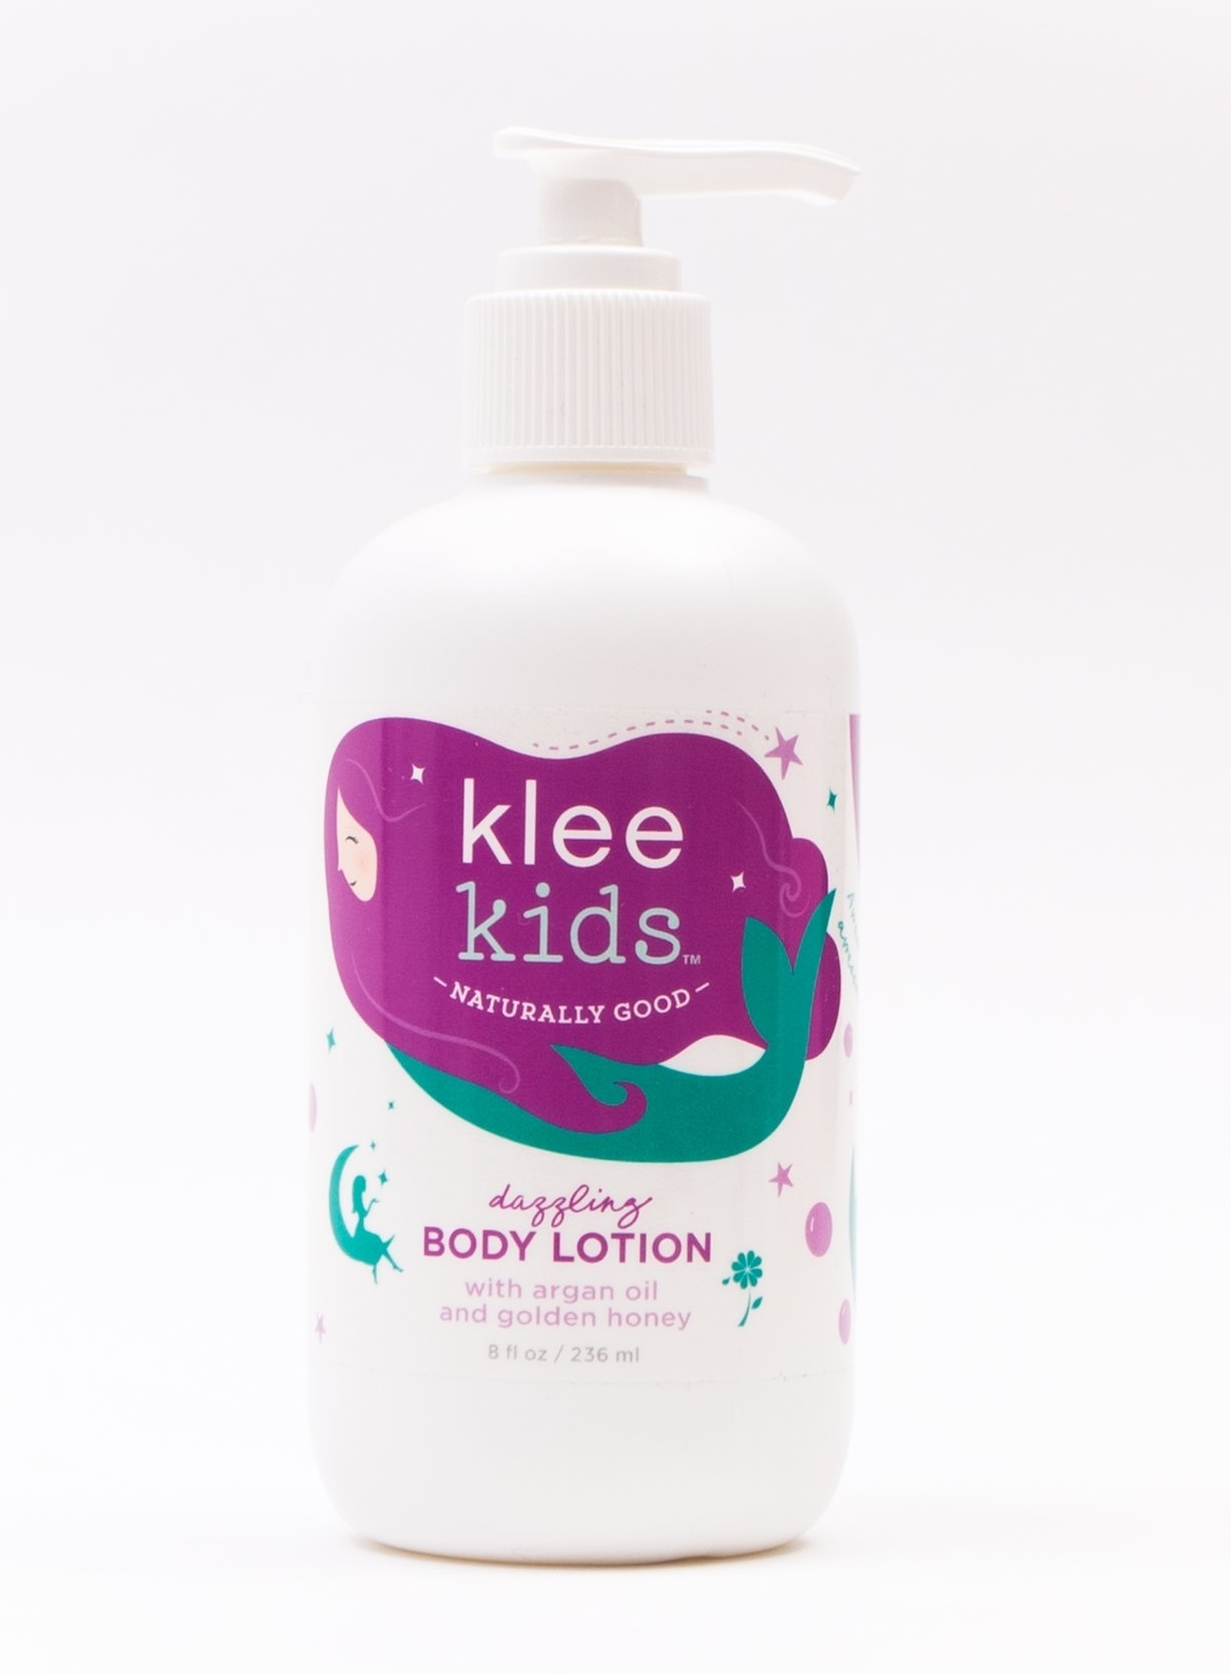 Klee Dazzling Body Lotion | 8 oz